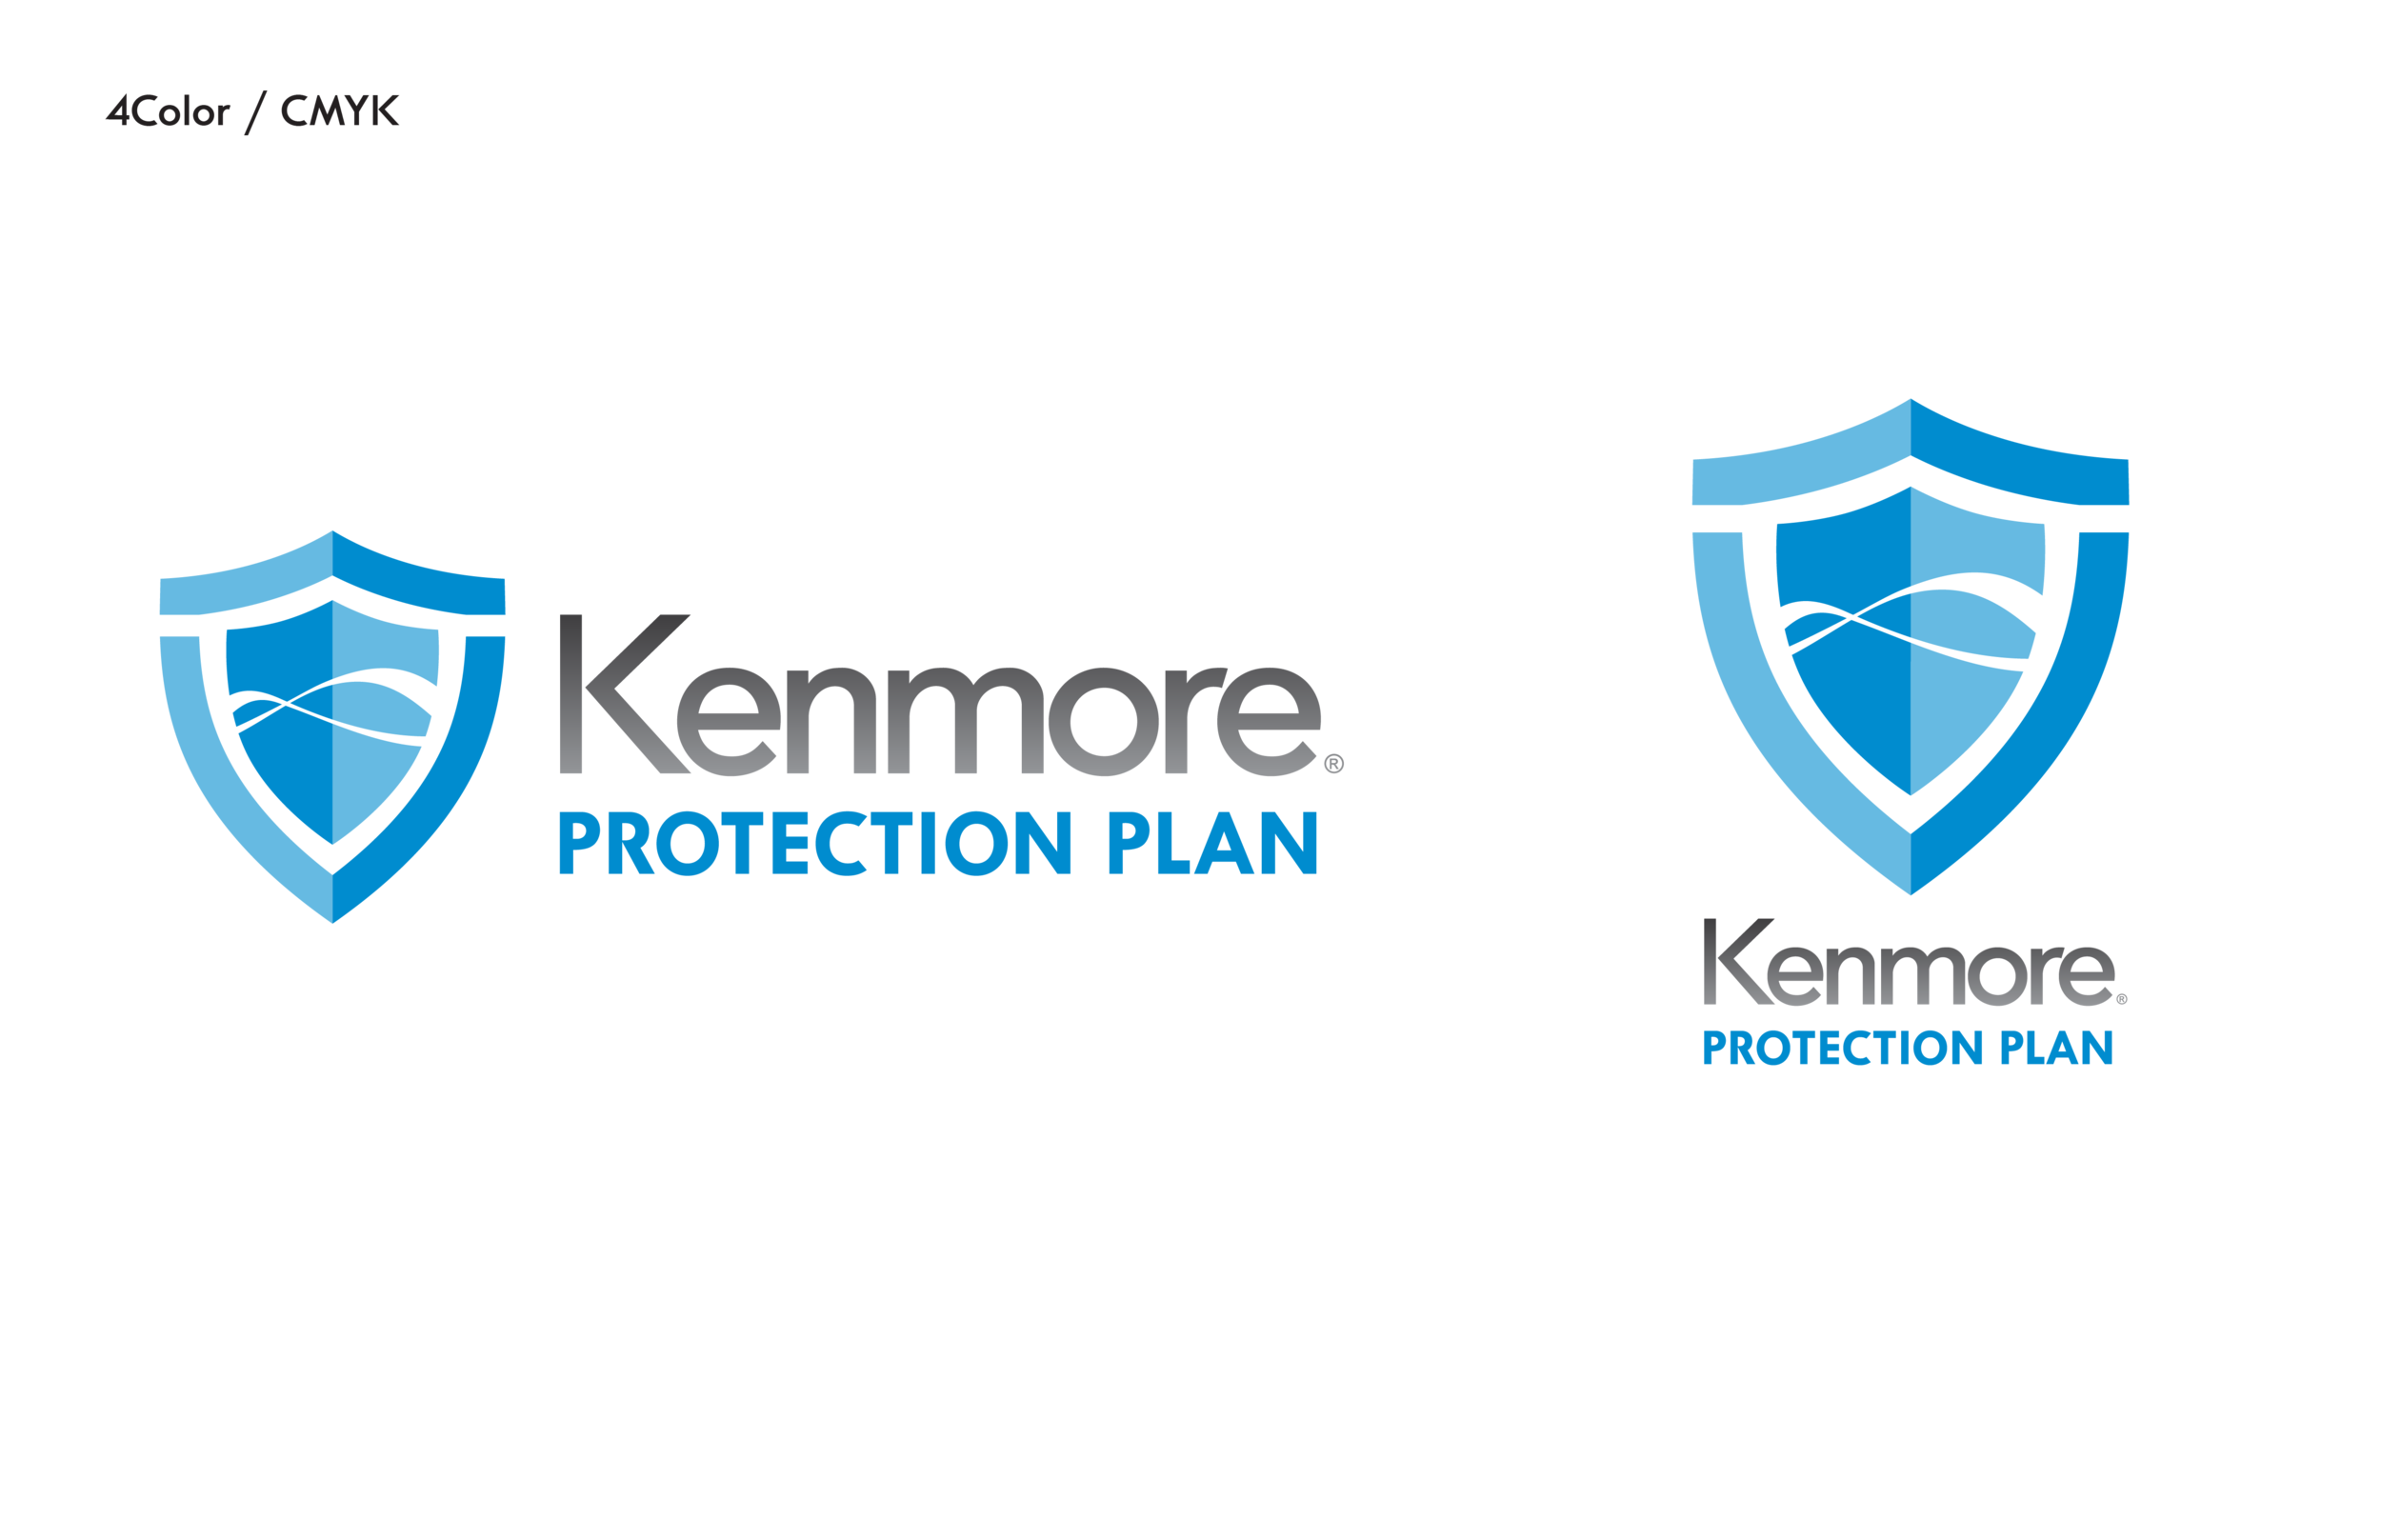 Kenmore_Protection_logo_Logo_4Color_CMYK.png